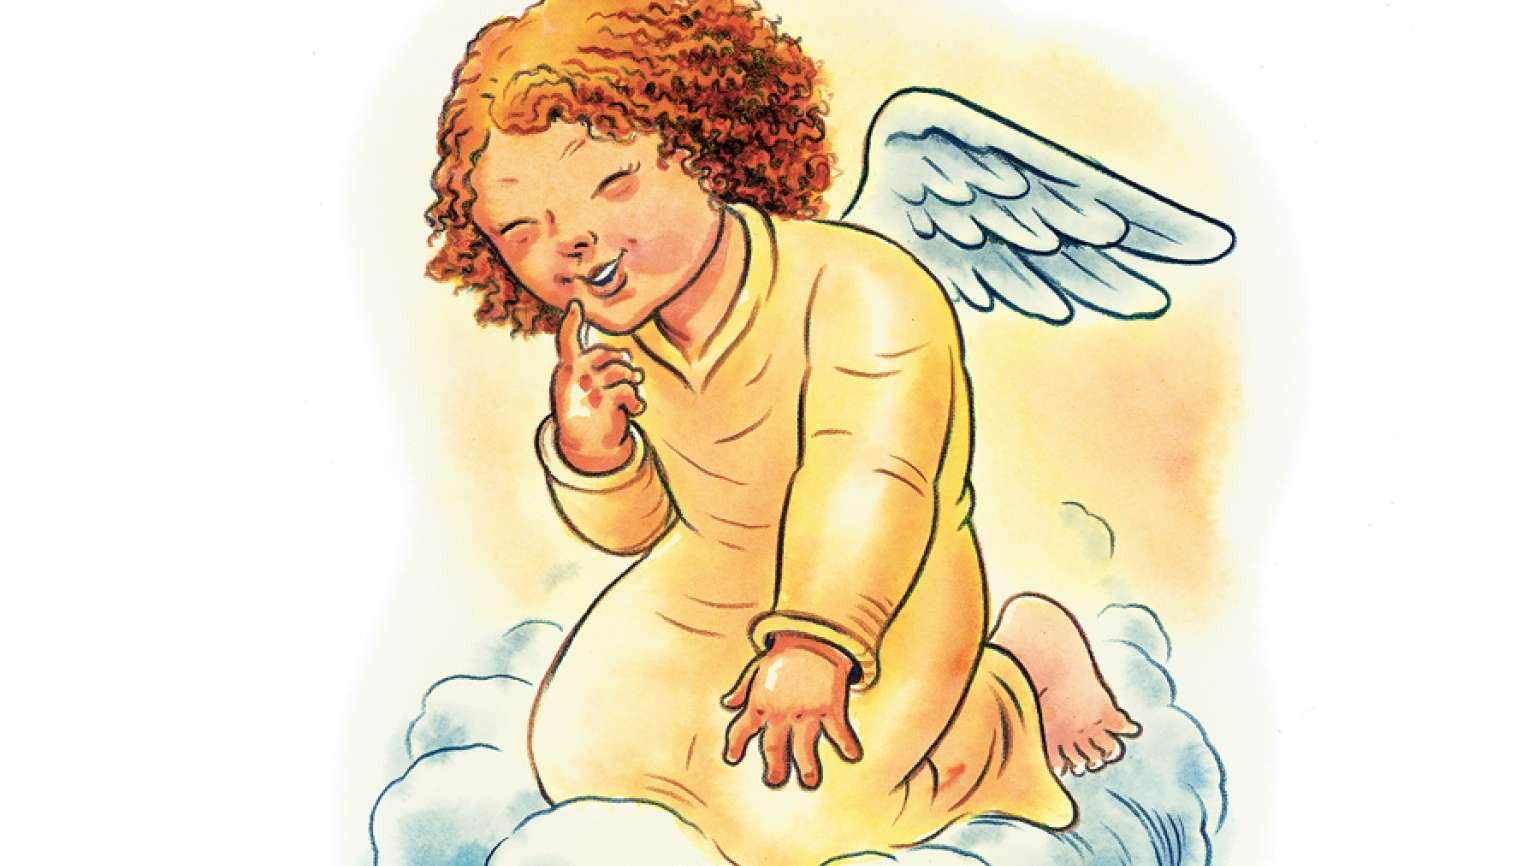 An artist's rendering of a red-haired cherub